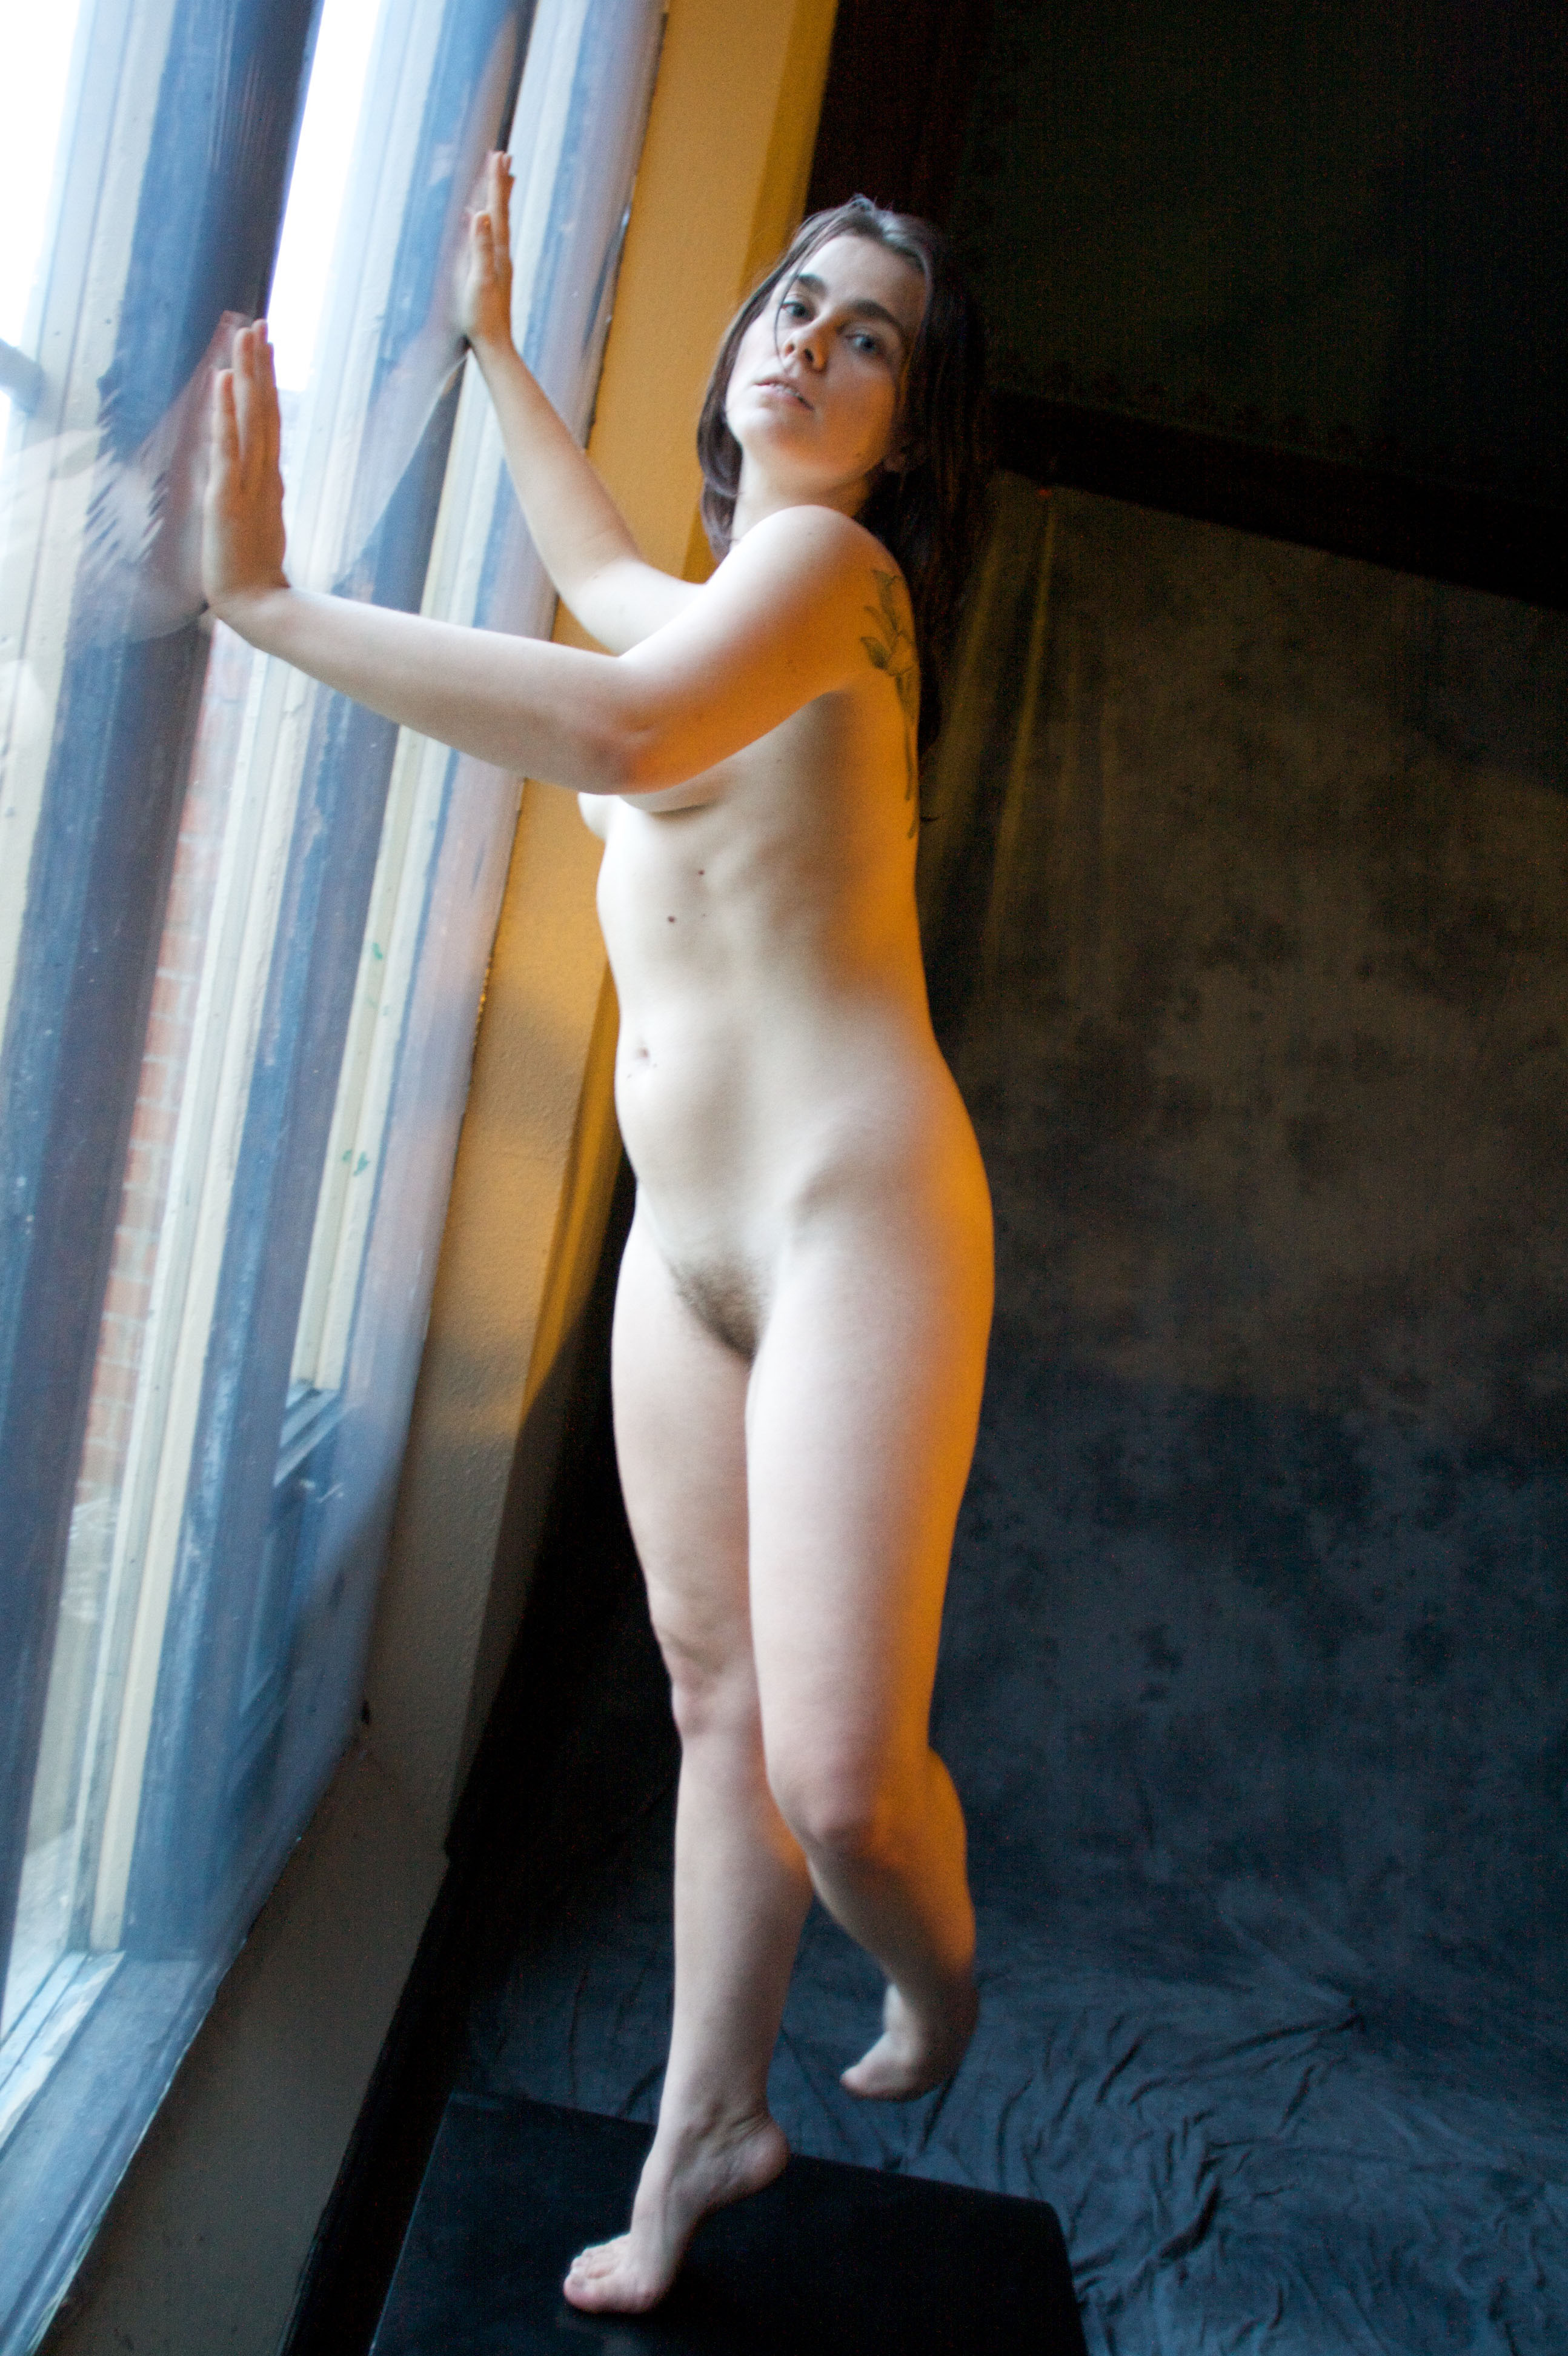 photography of nude women